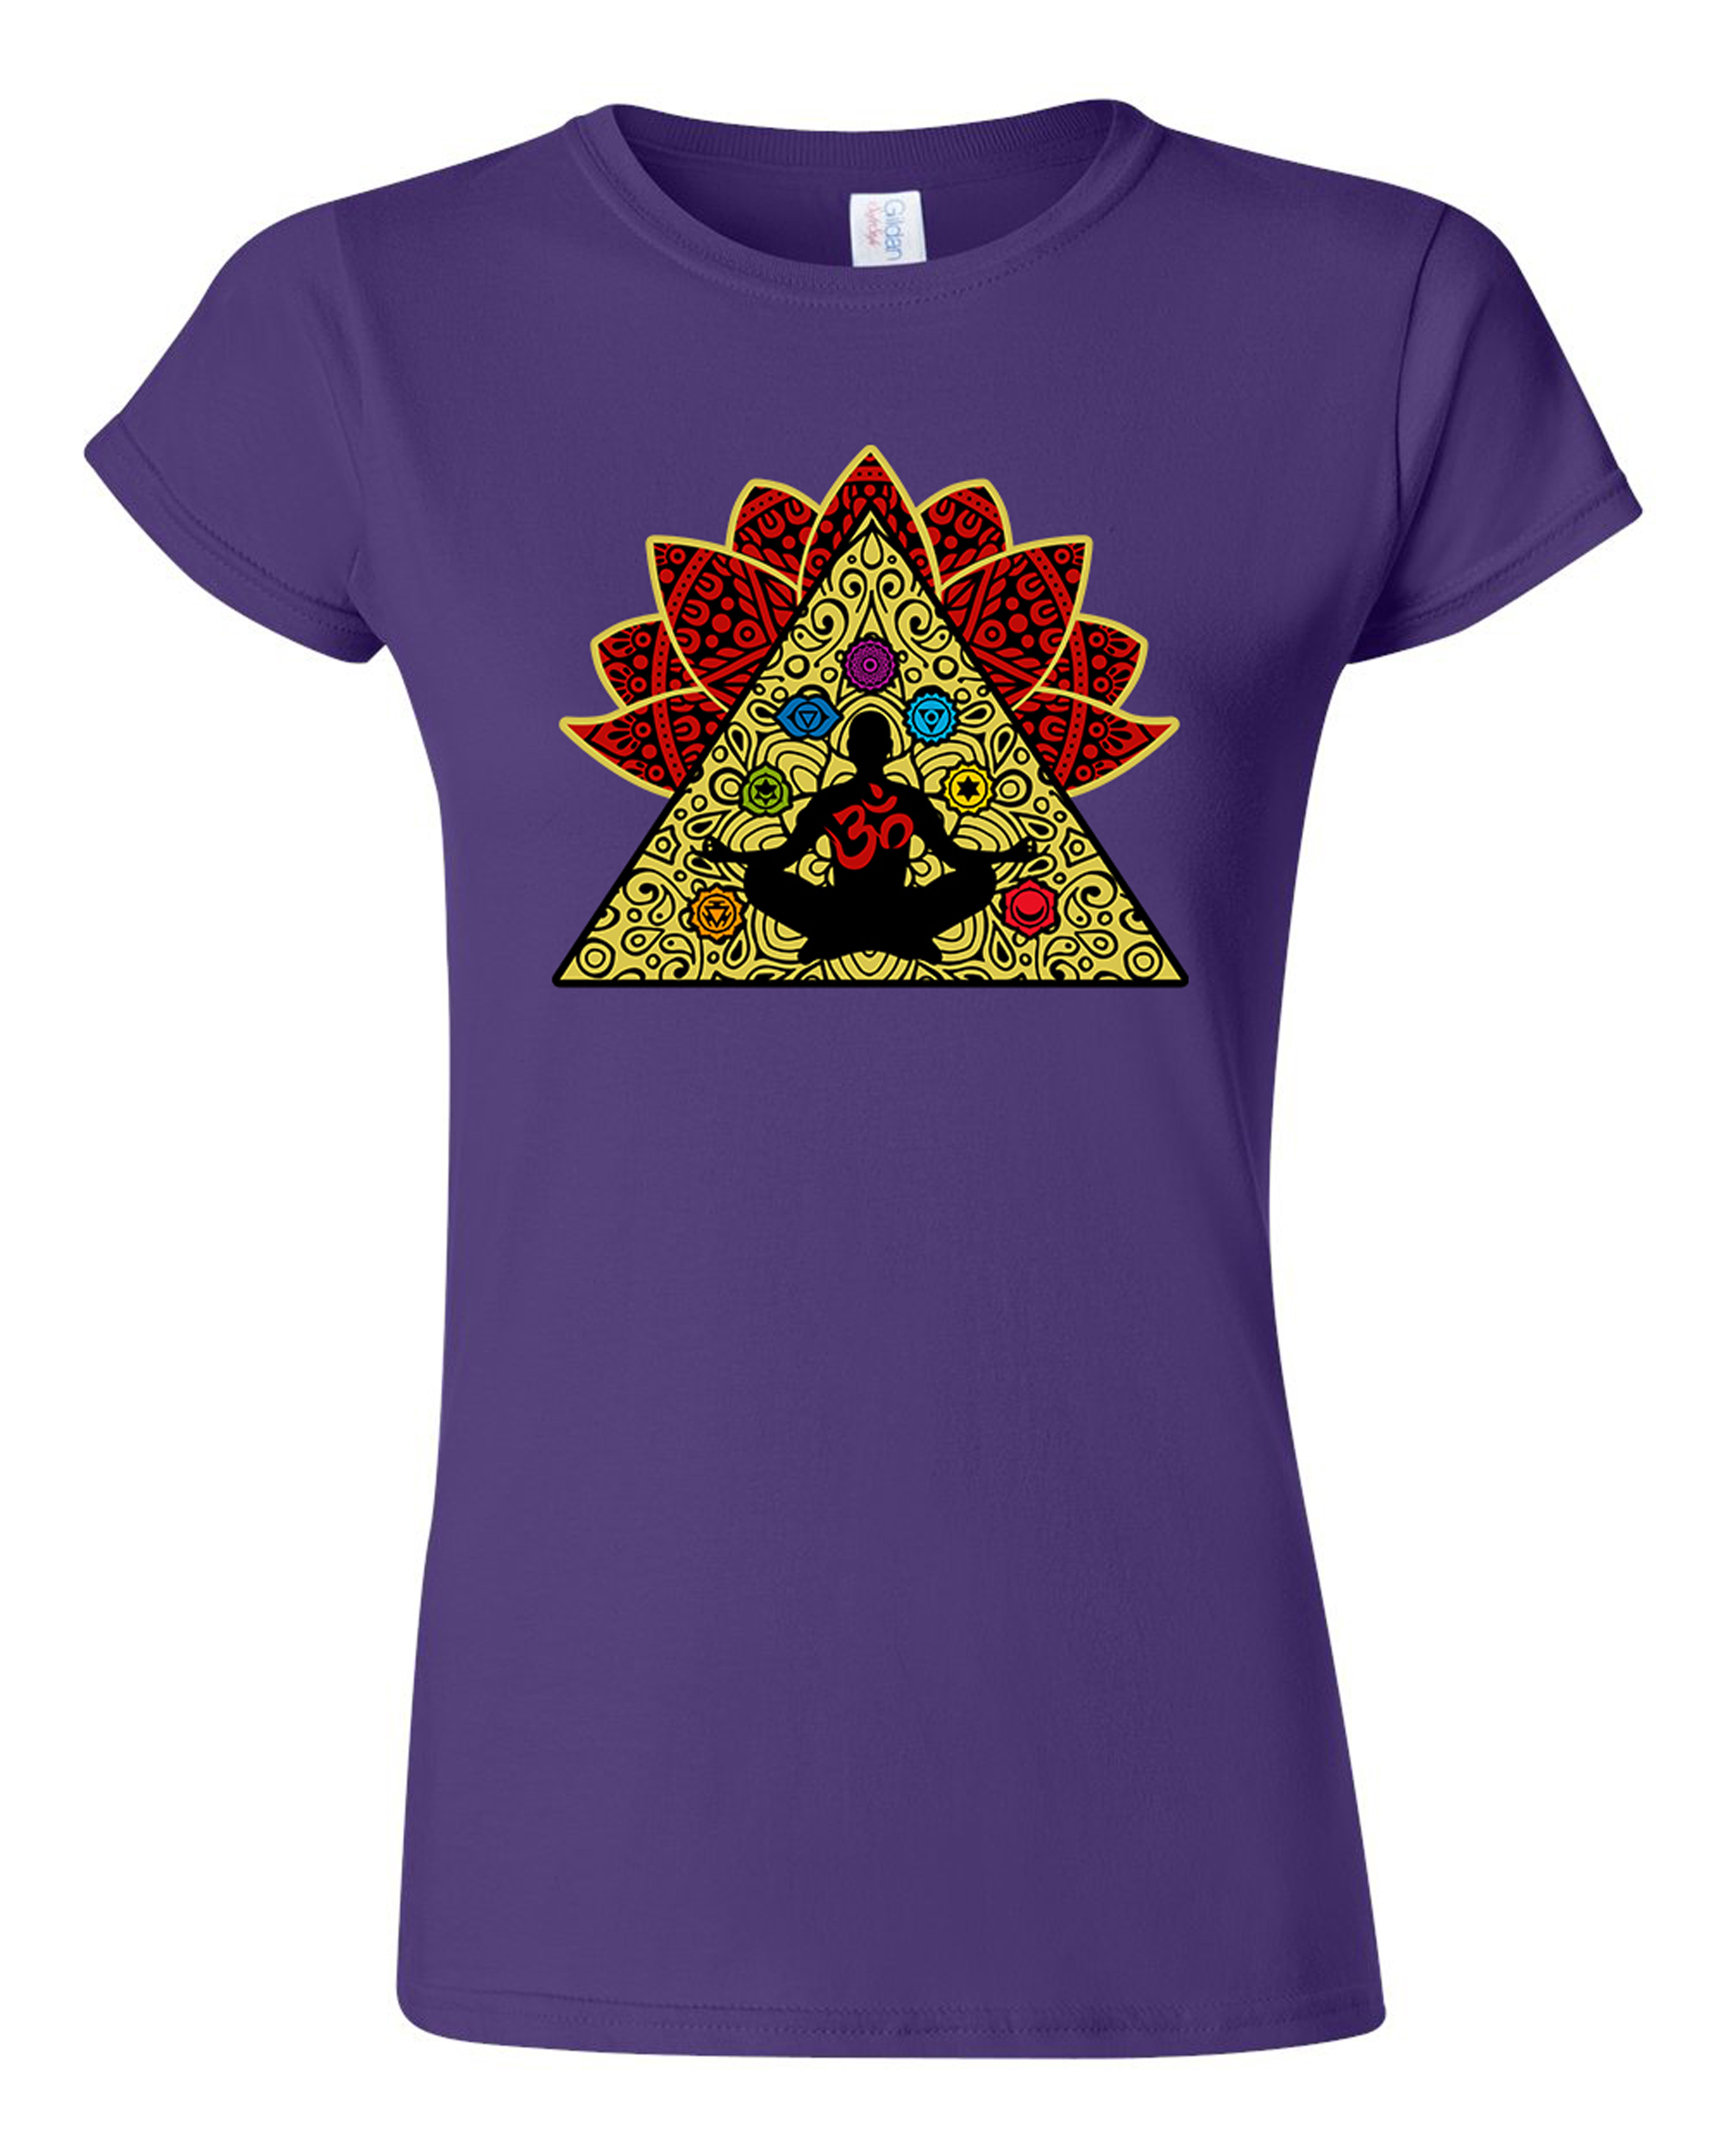 Junior Yoga Meditation Elements Relax Energy DT T-Shirt Tee